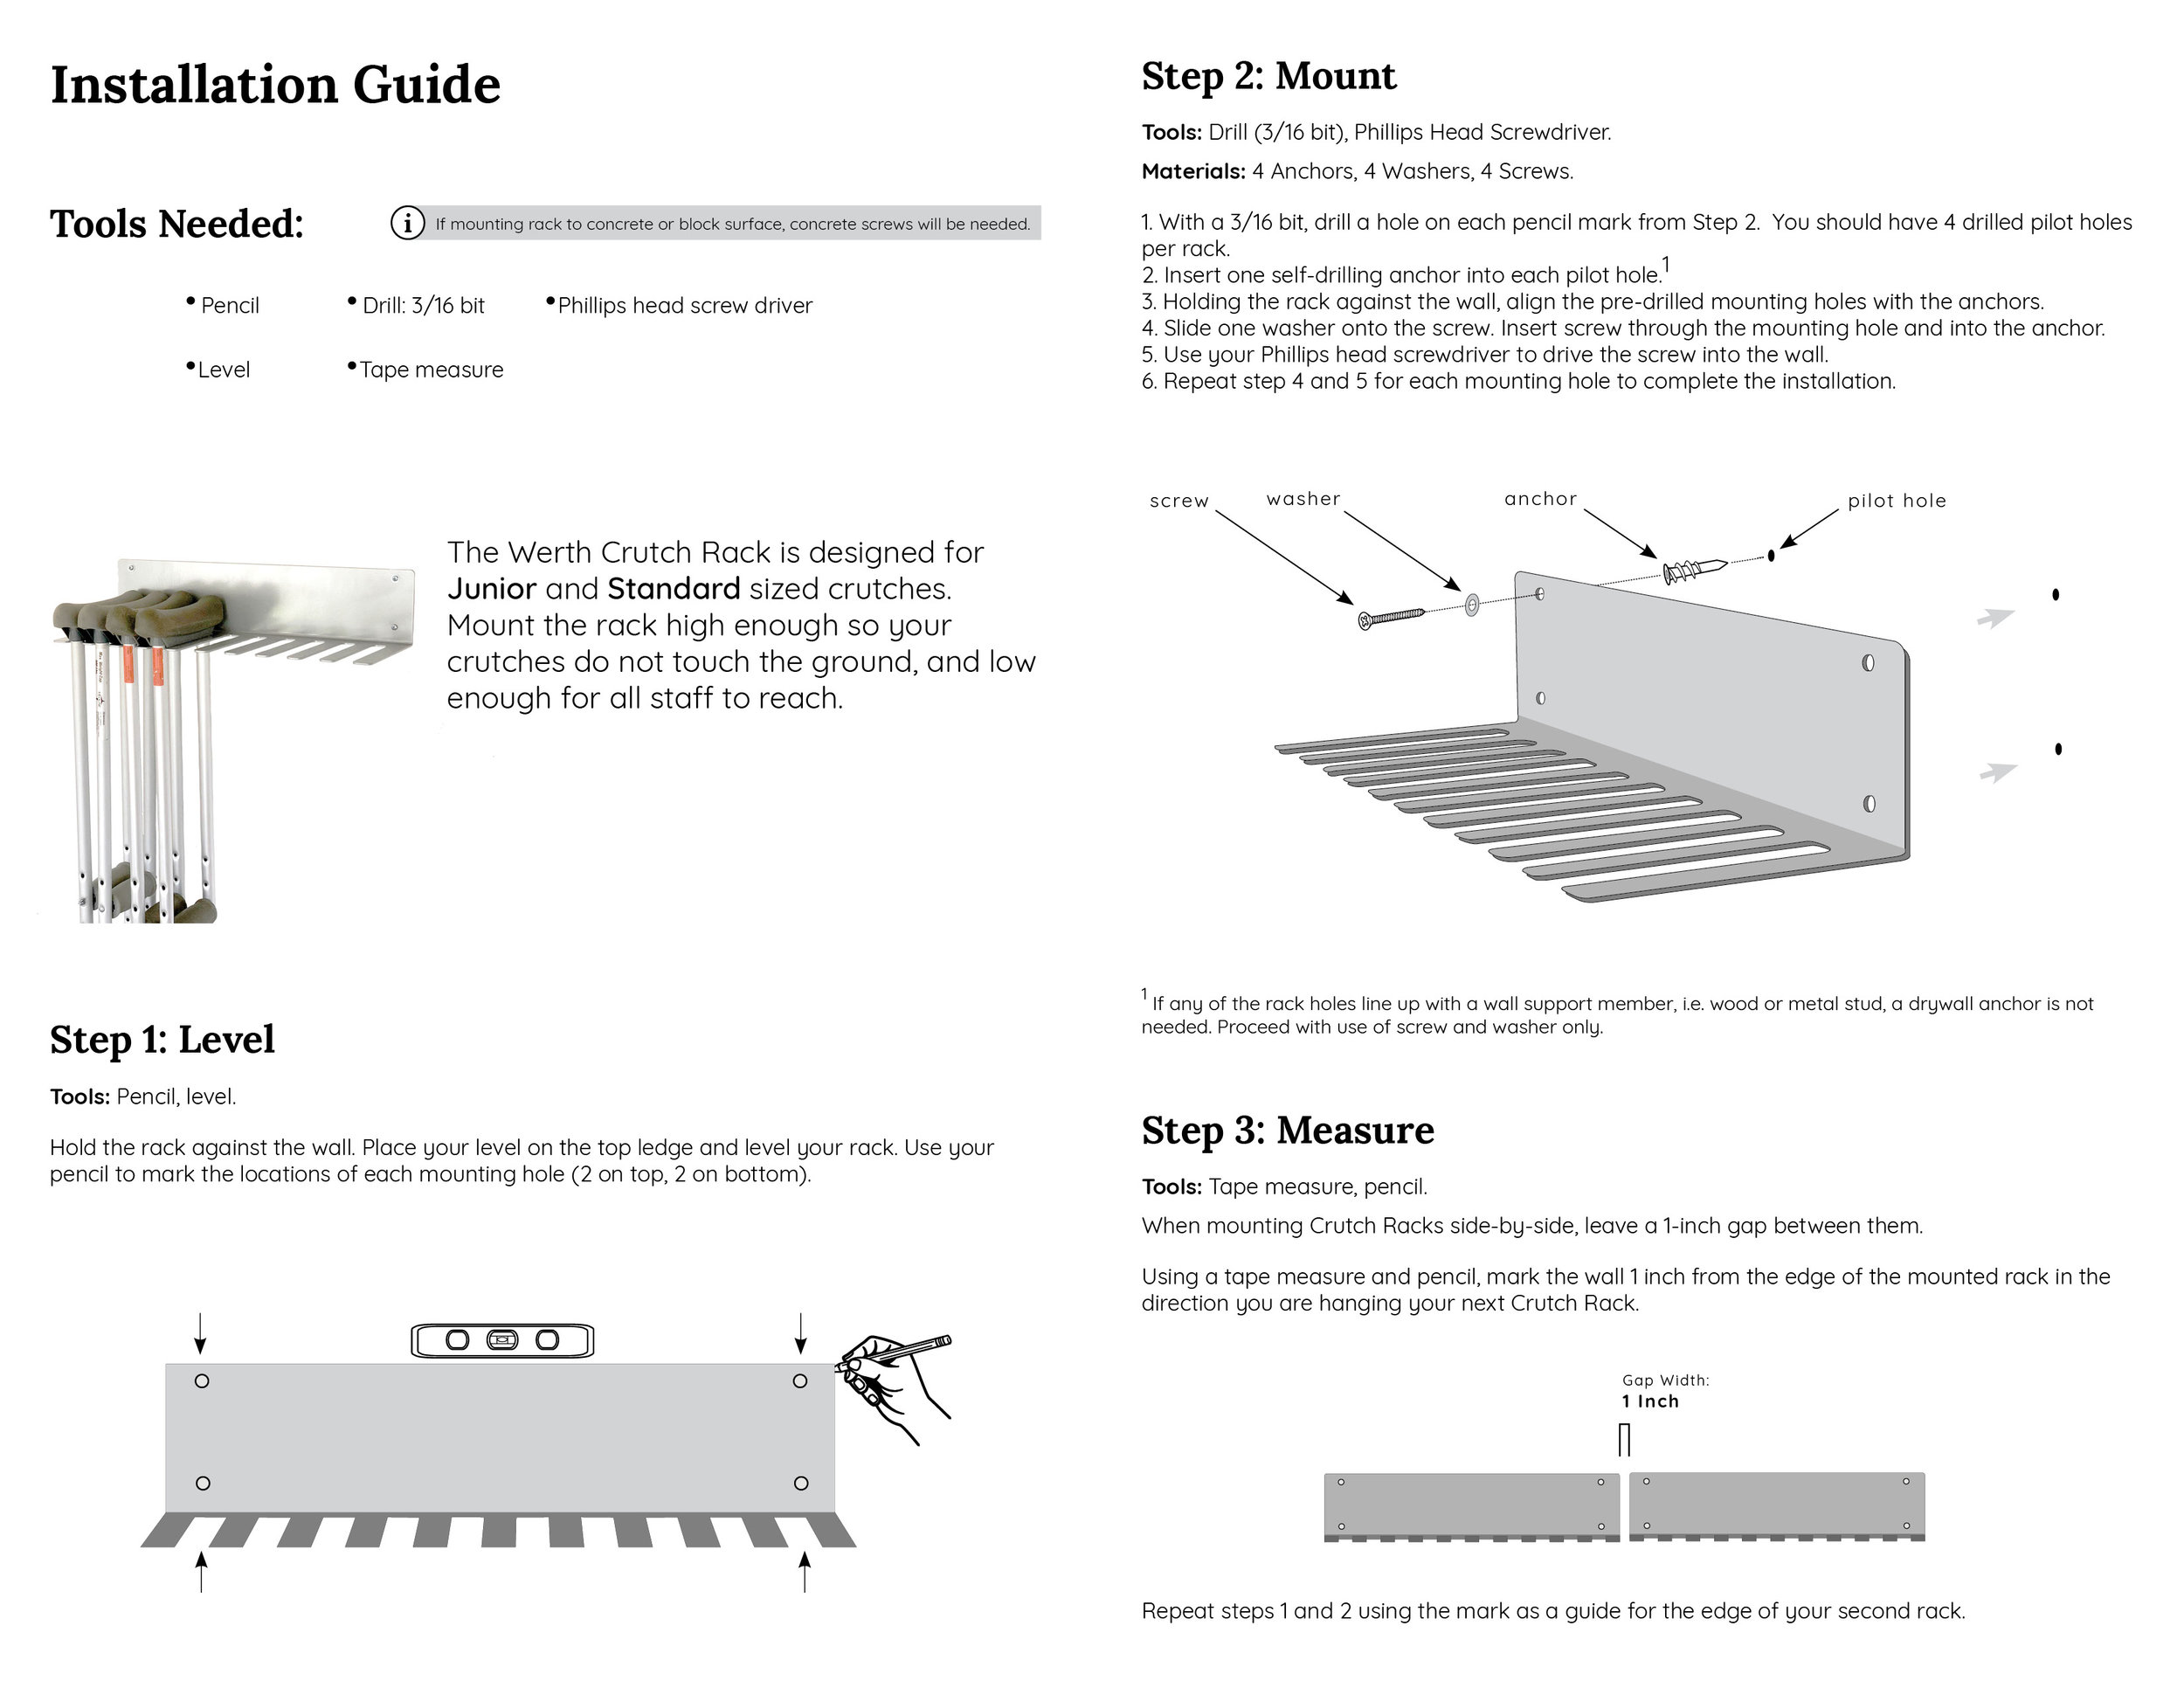 Installation Guide - Each Crutch Rack includes mounting hardware (4 screws, washers, and drywall anchors) and the installation guide.